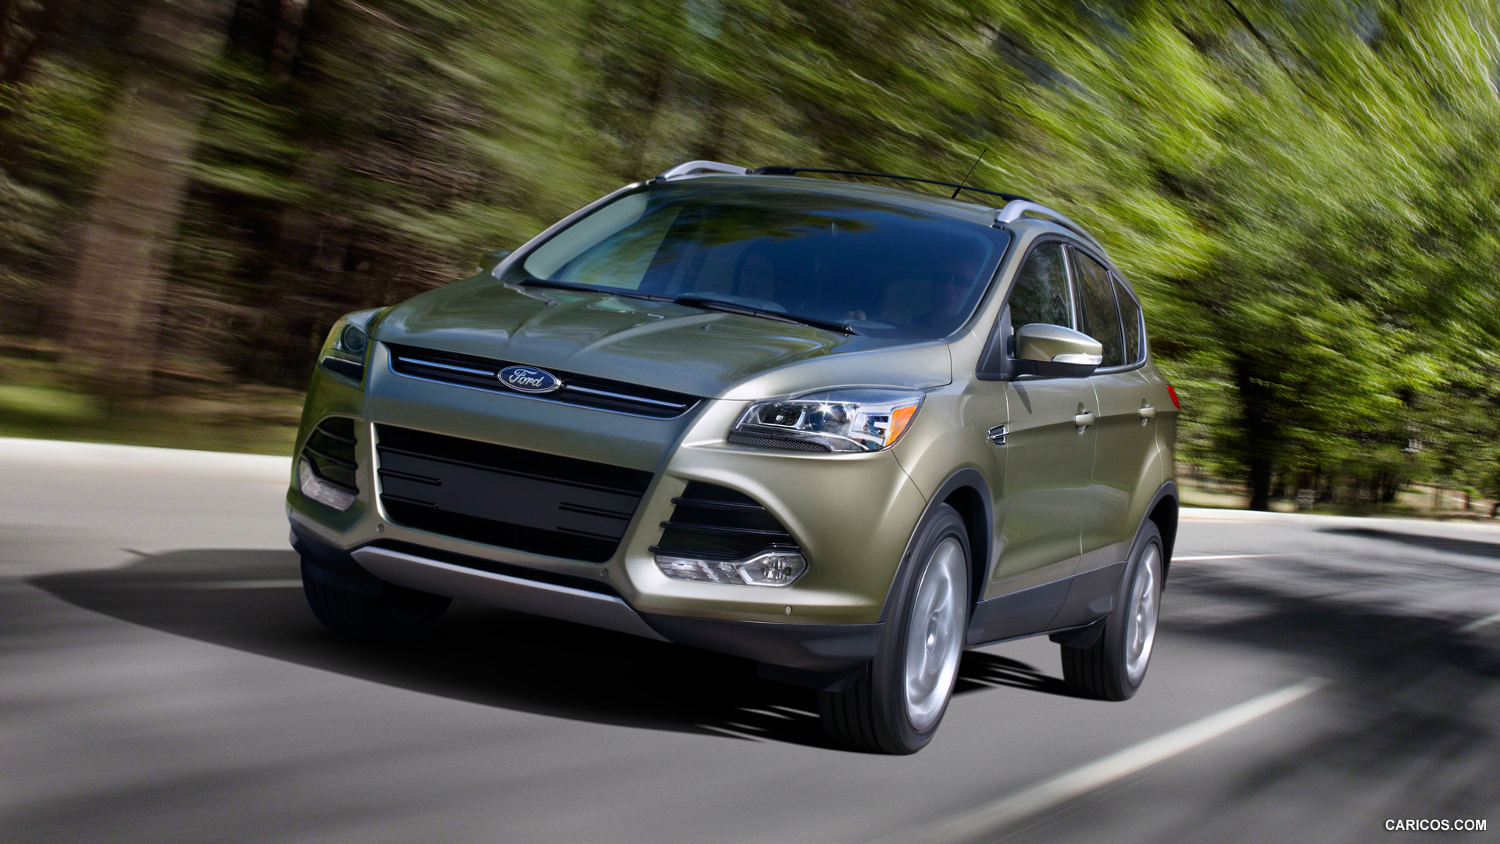 Ford Escape Seating